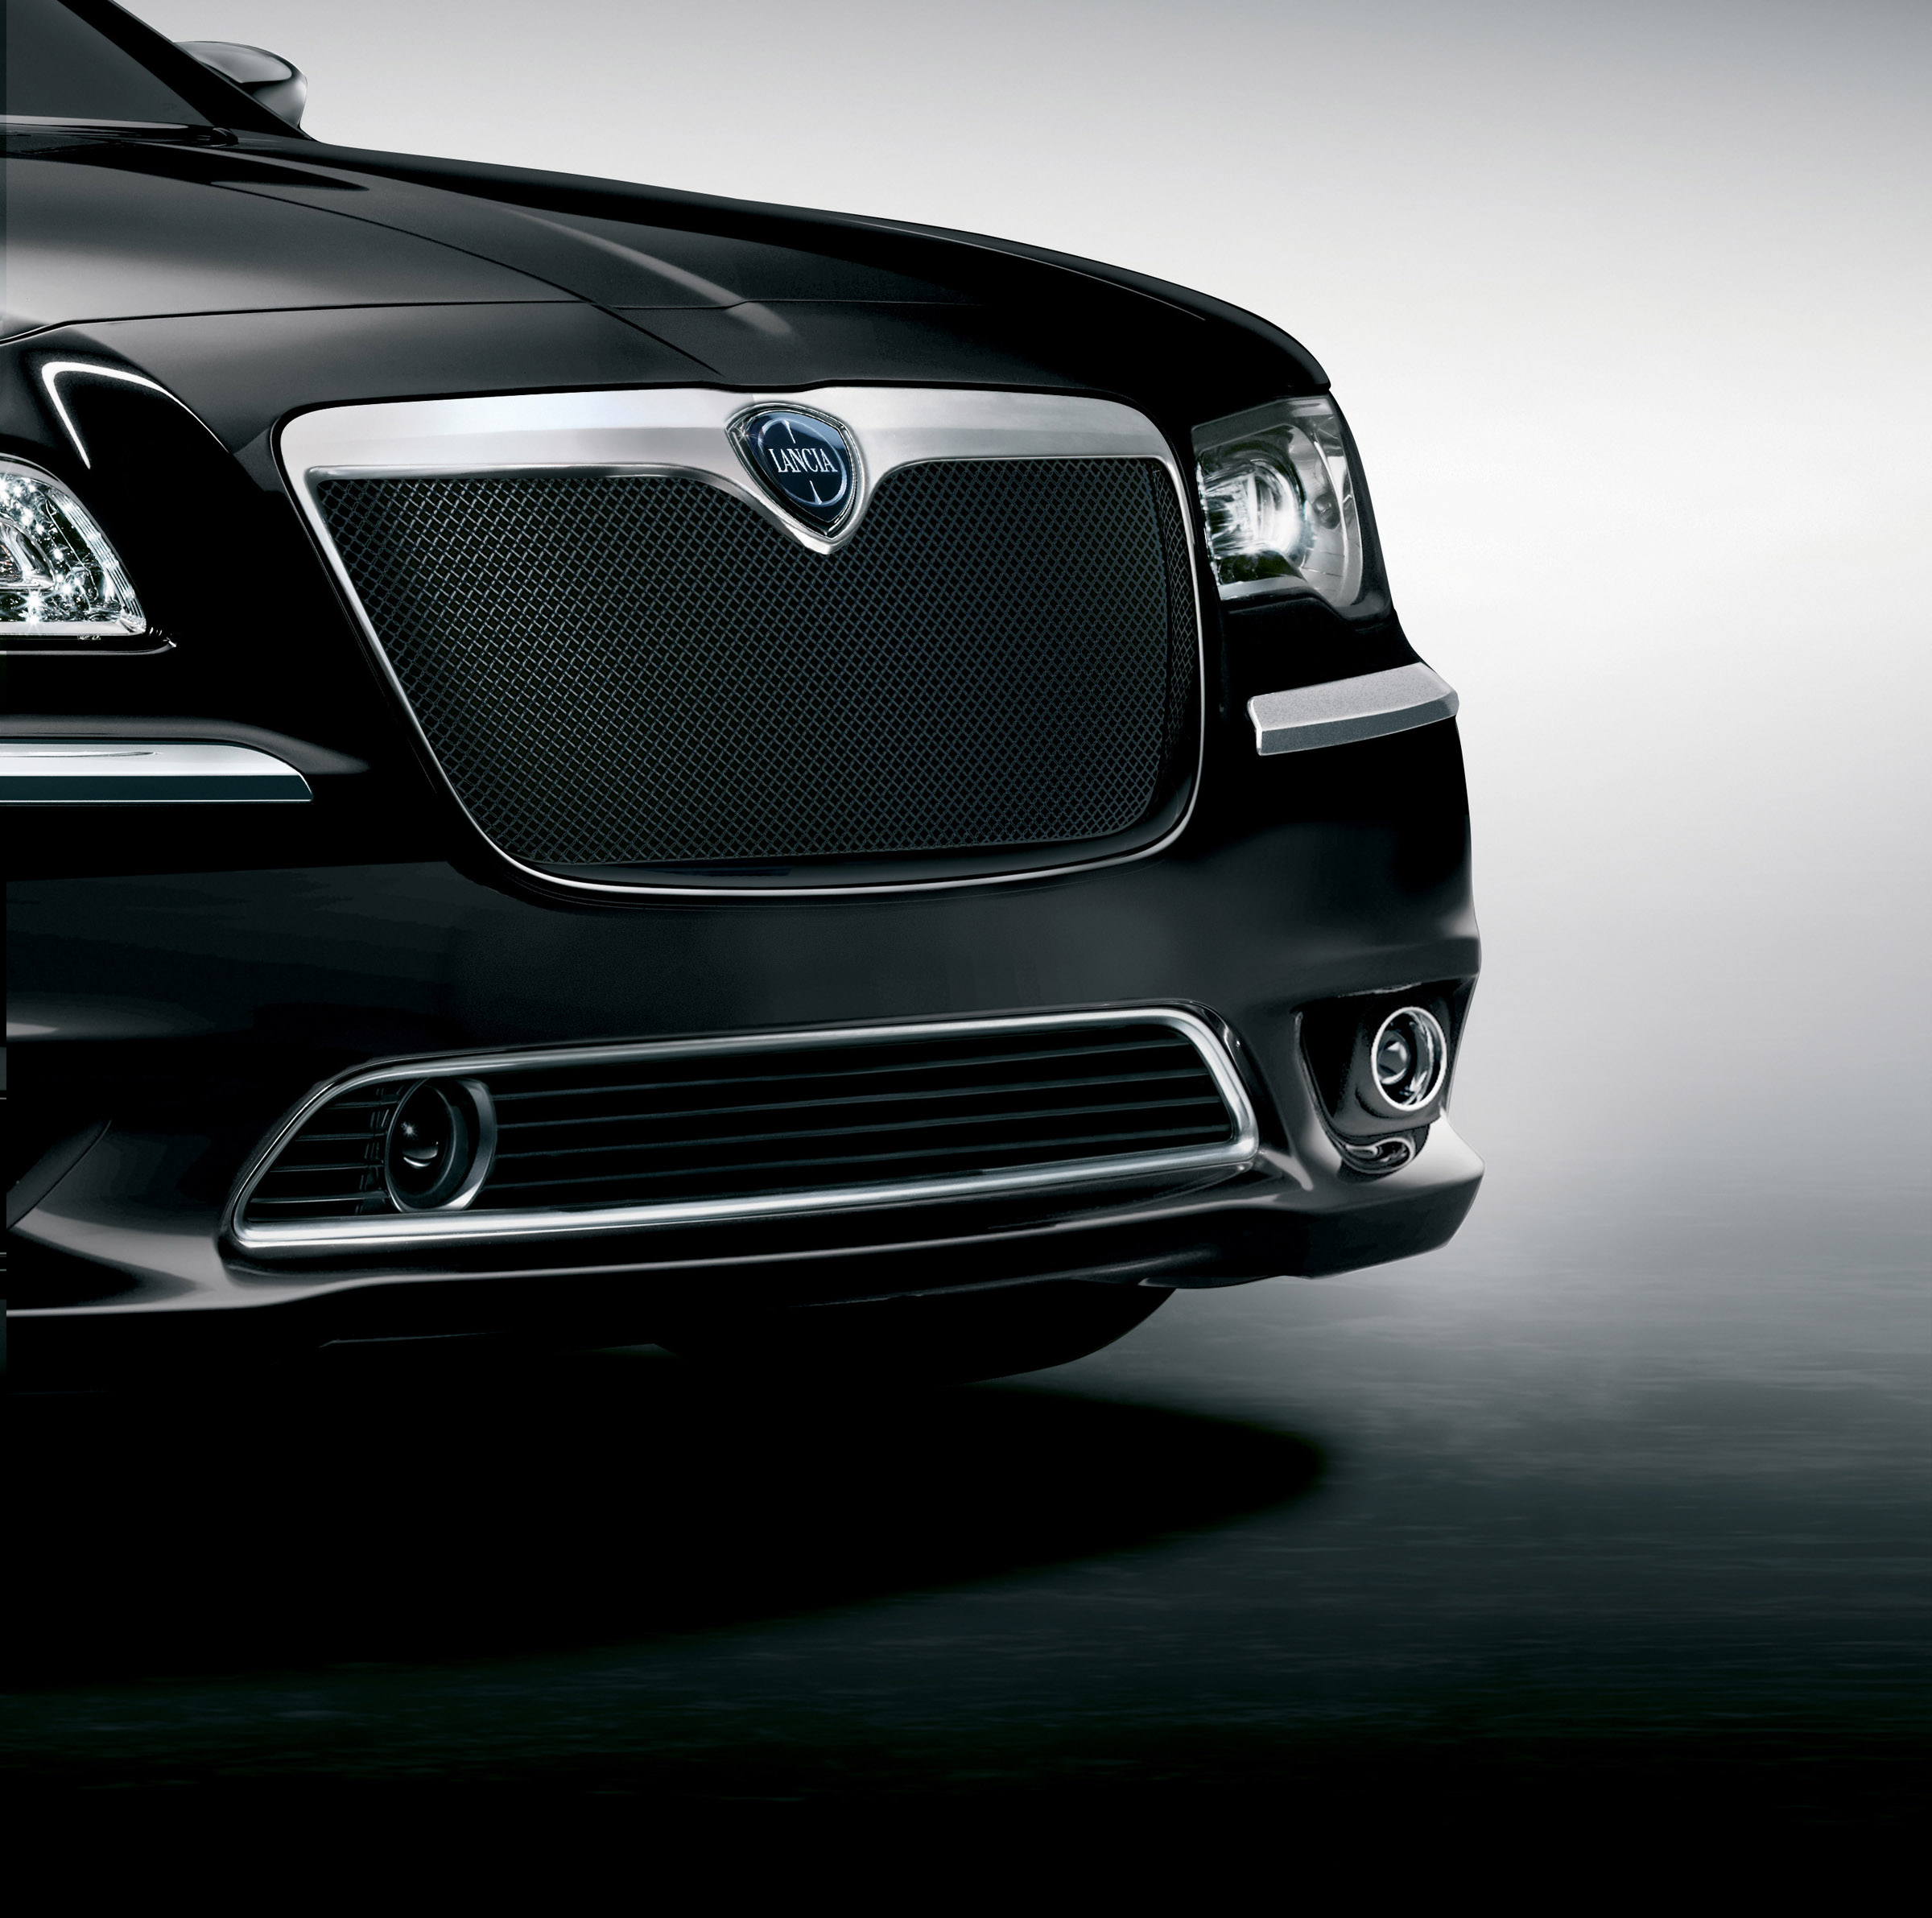 2012 Lancia Thema And Voyager Accessories